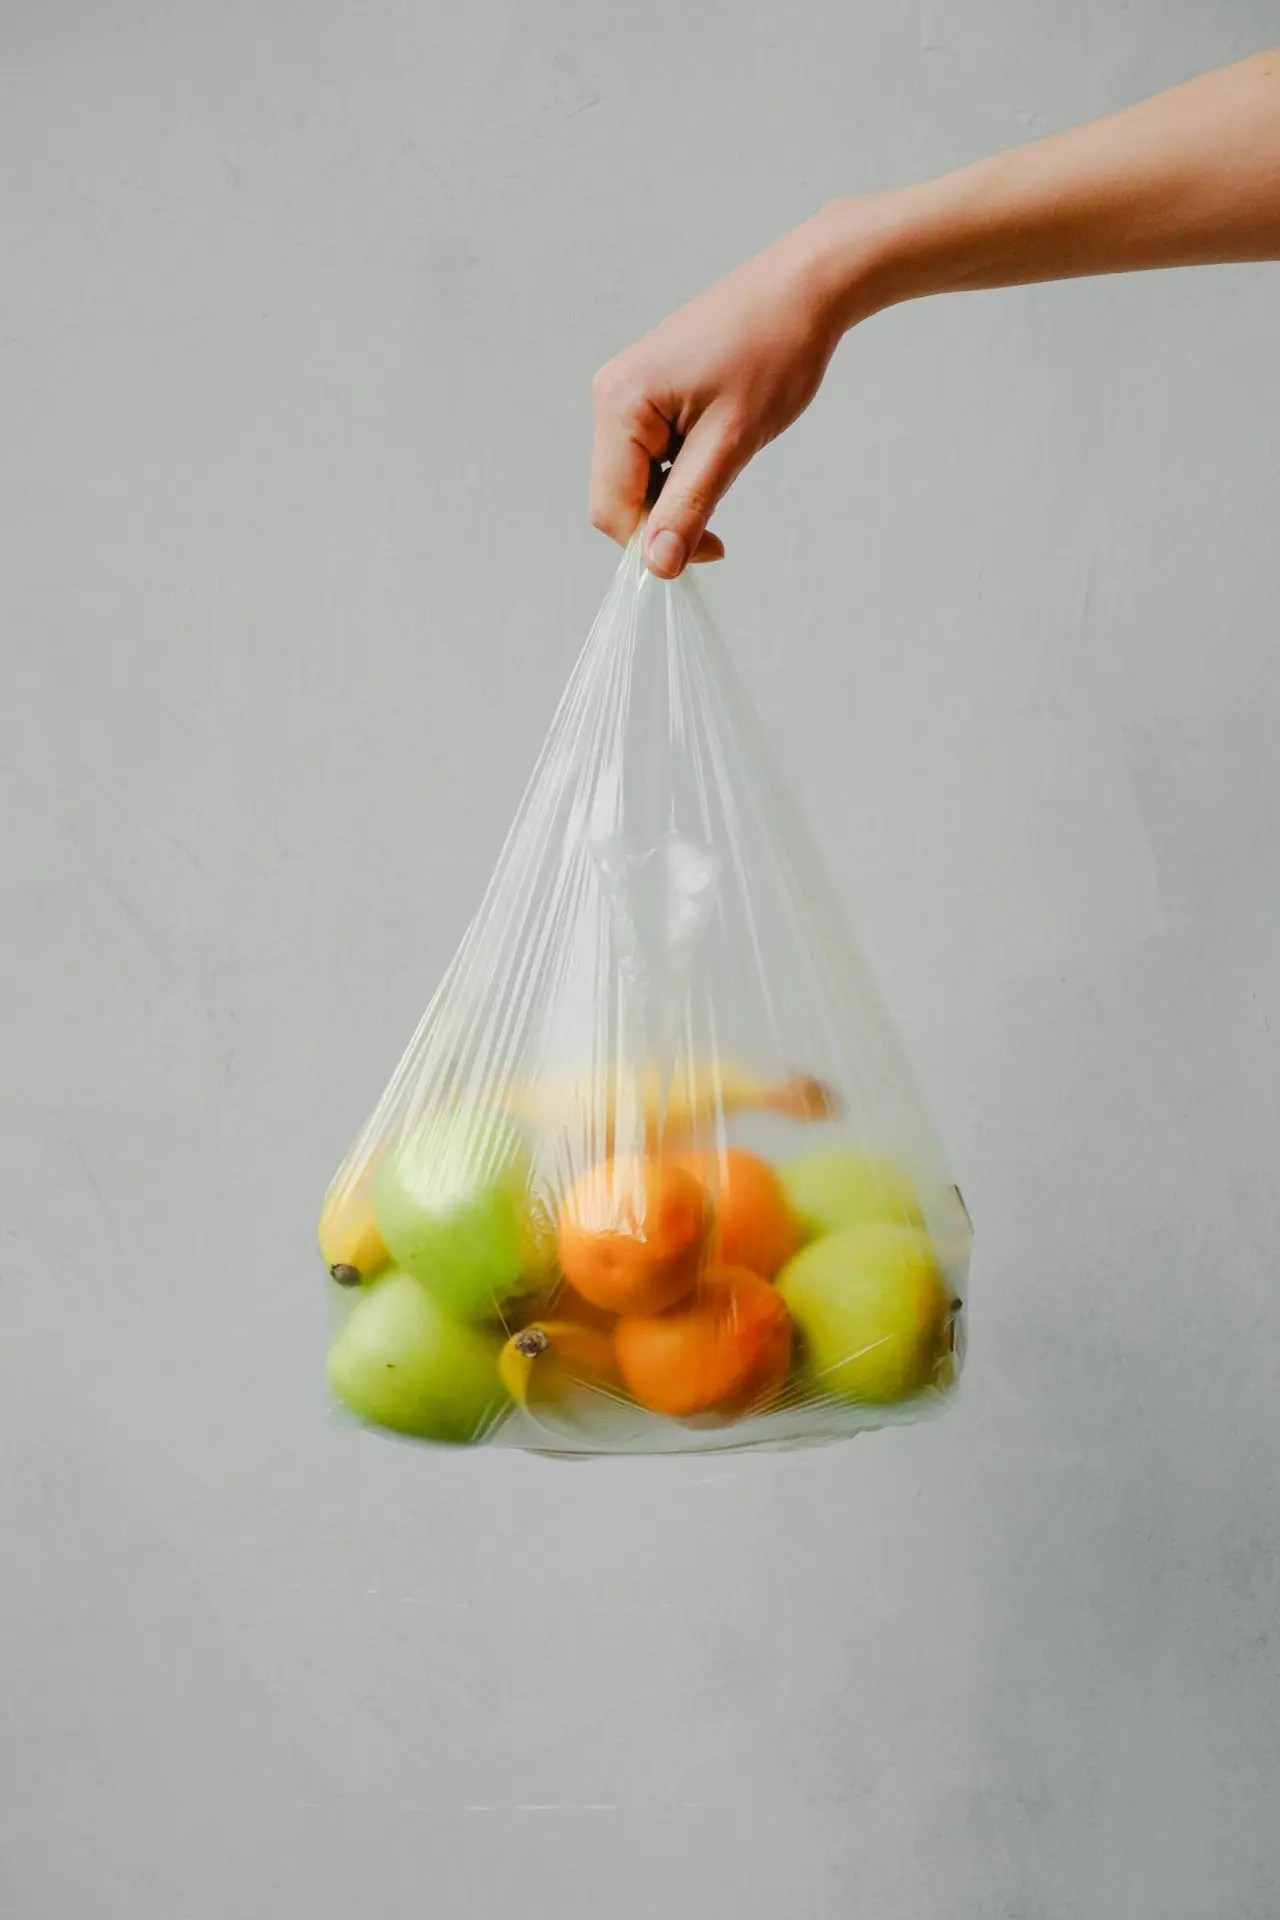 plastic bag with fruits in it